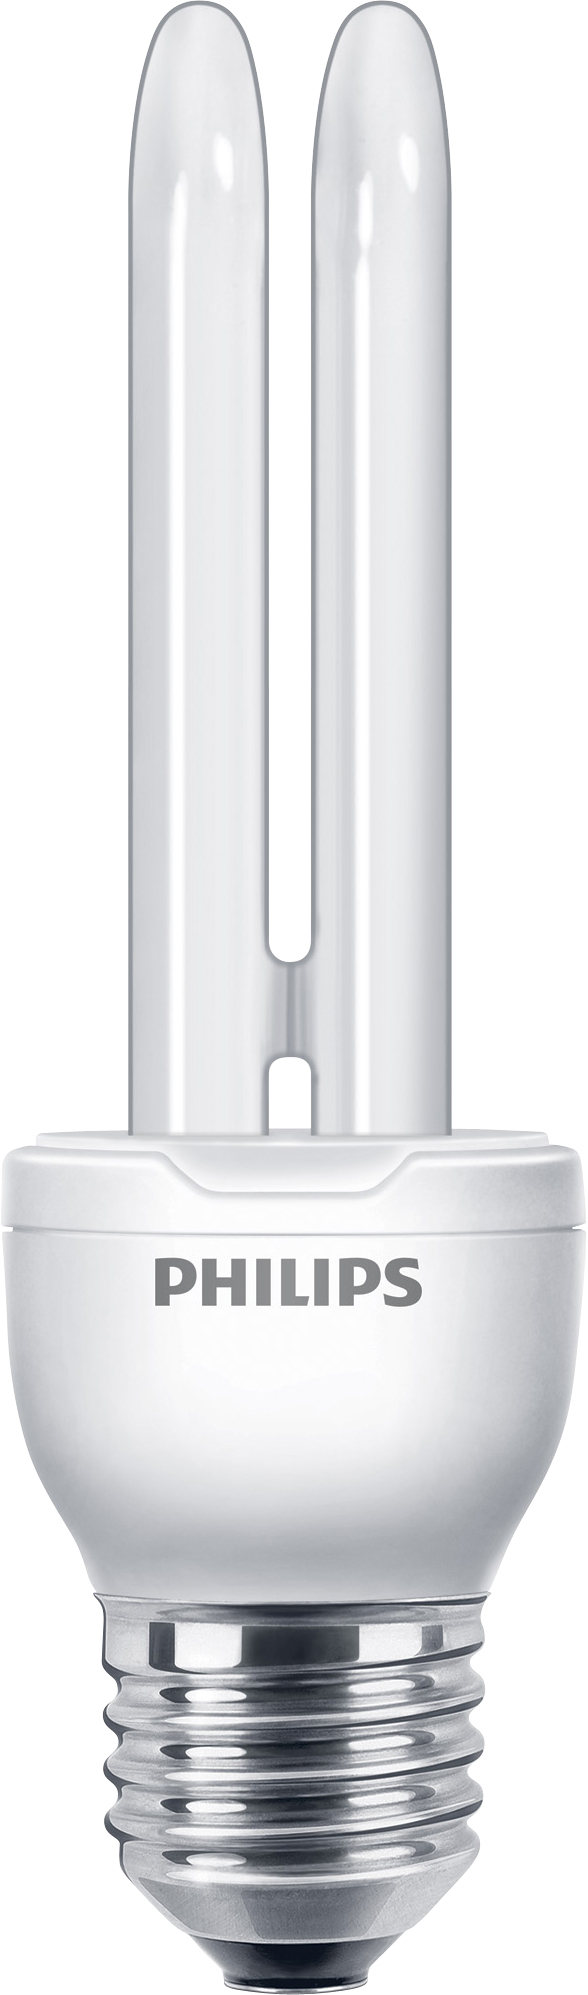 Philips Small Economy Stick 11W E27 WW